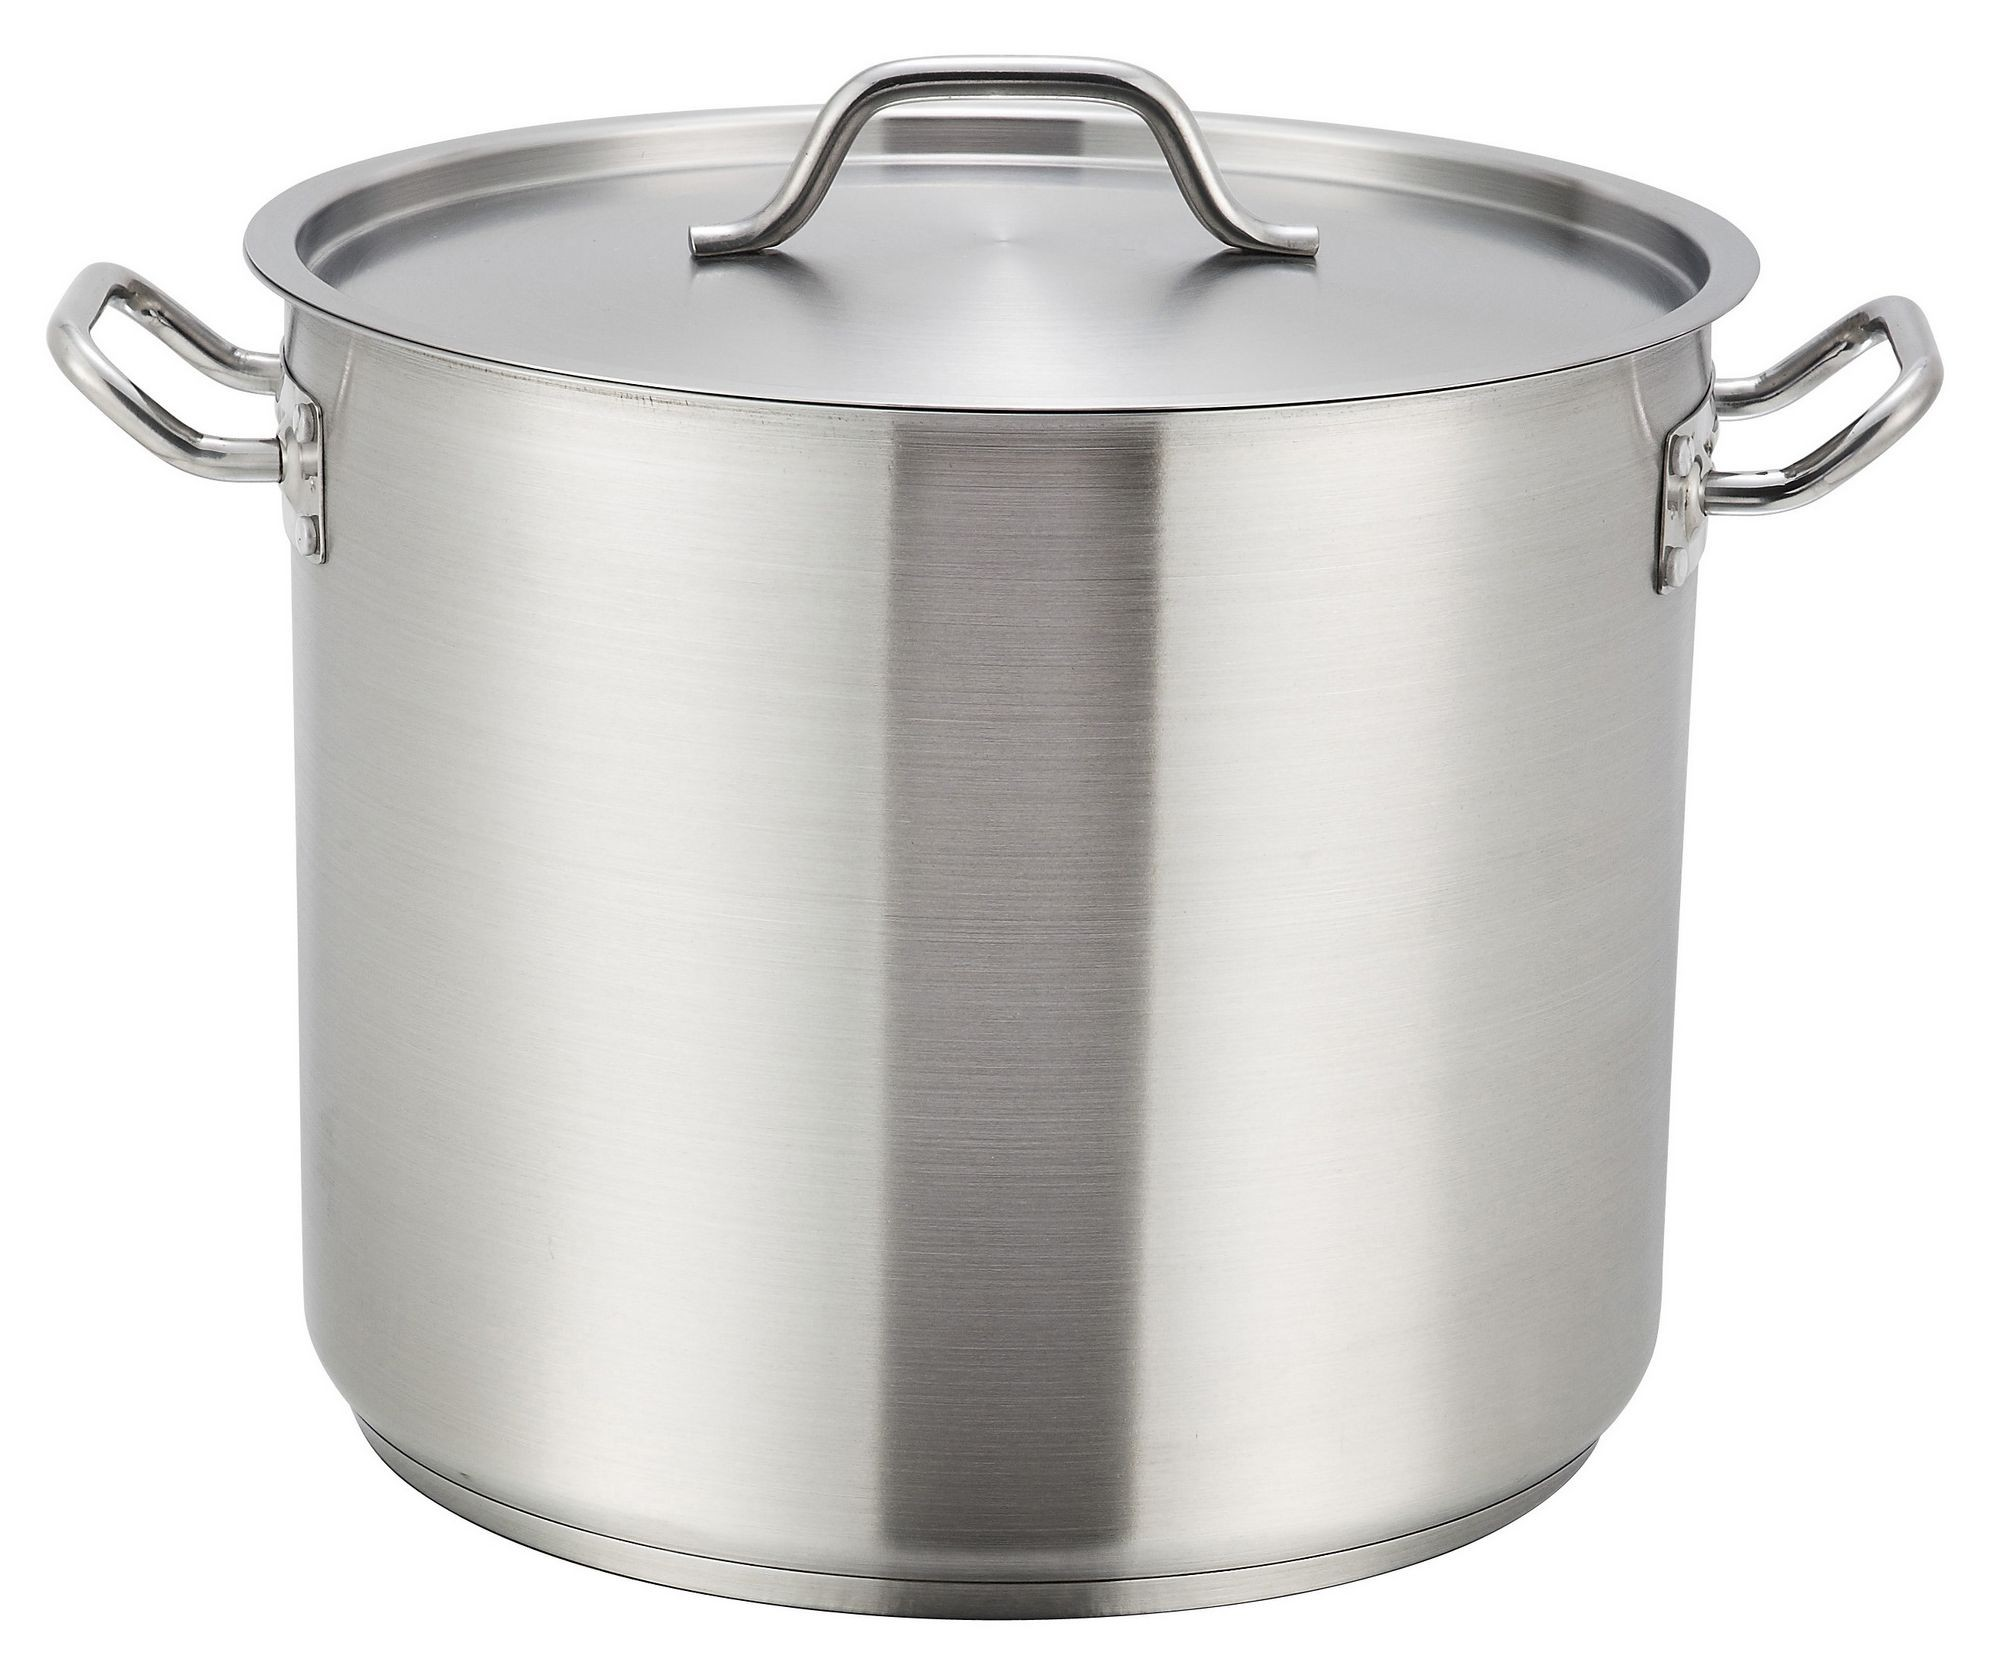 Stainless Steel 8-Qt Stock Pot